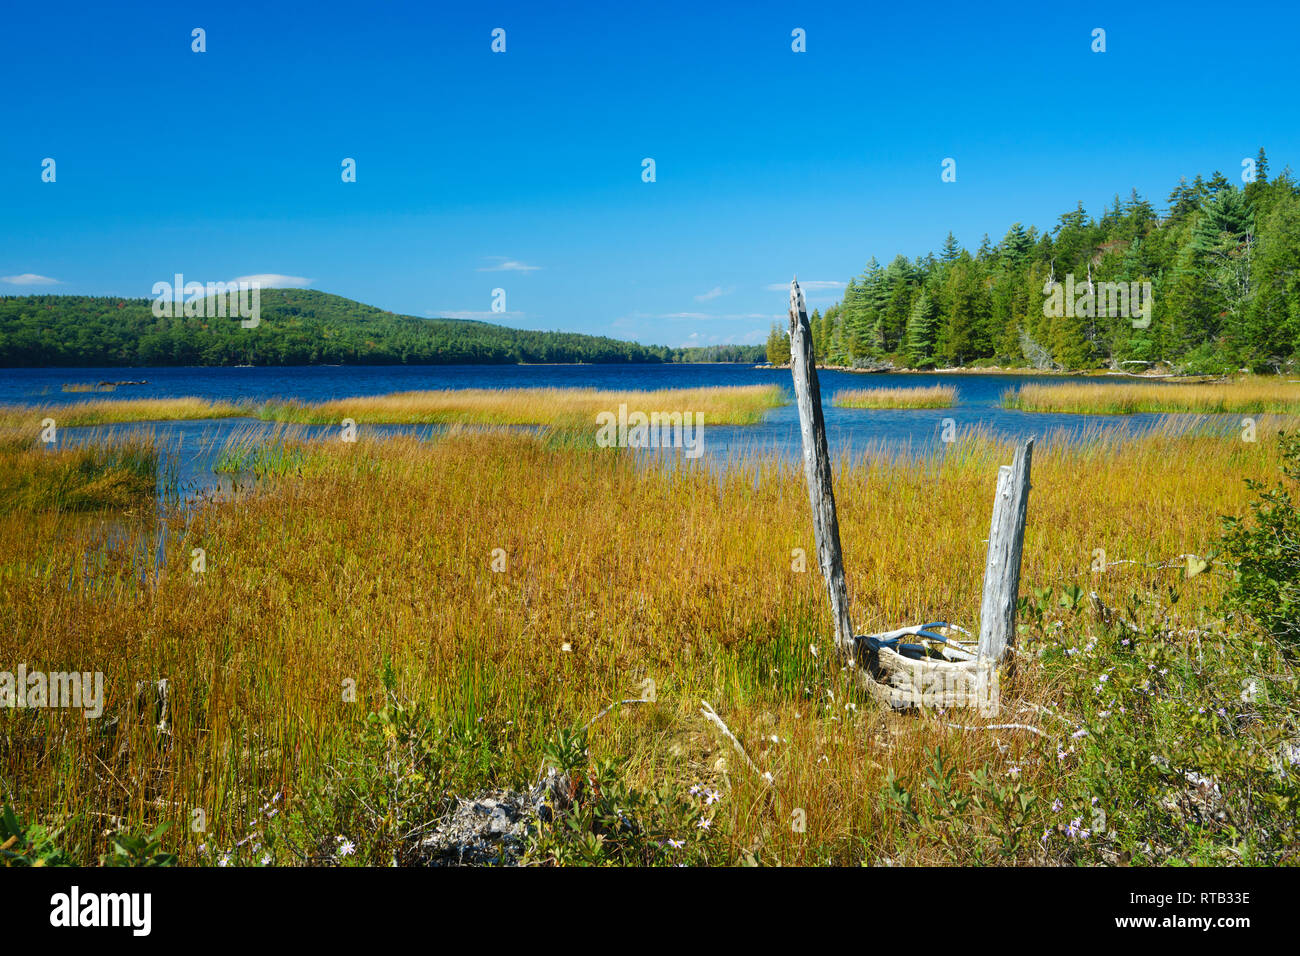 Eagle Lake seen from the grassy shore on a sunny afternoon. Acadia National Park, Maine, USA. Stock Photo